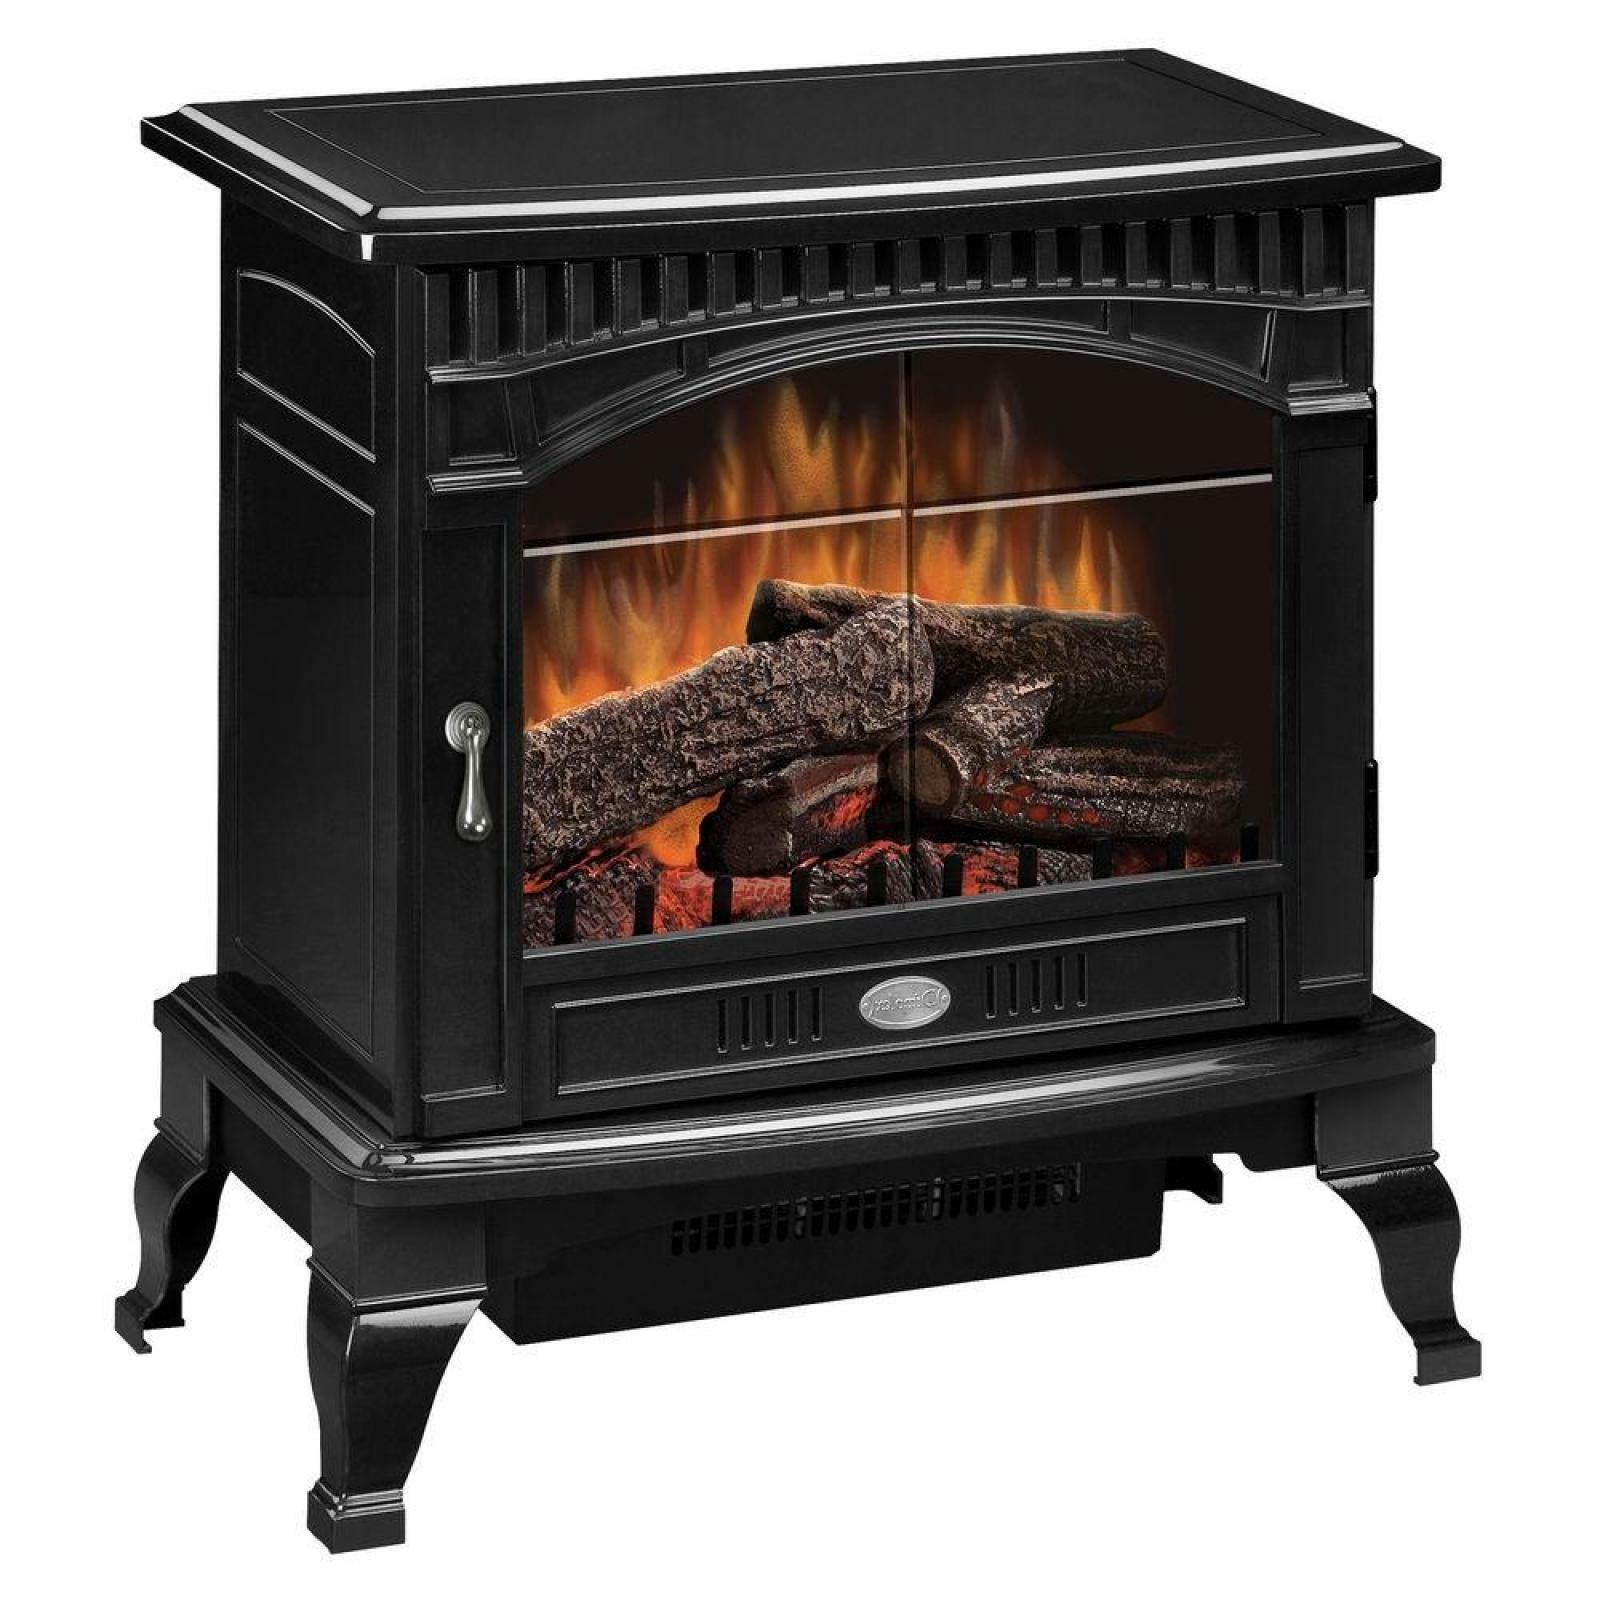 Electric Stove 400 sq. ft. Instant Flame Ambiance Room Firep